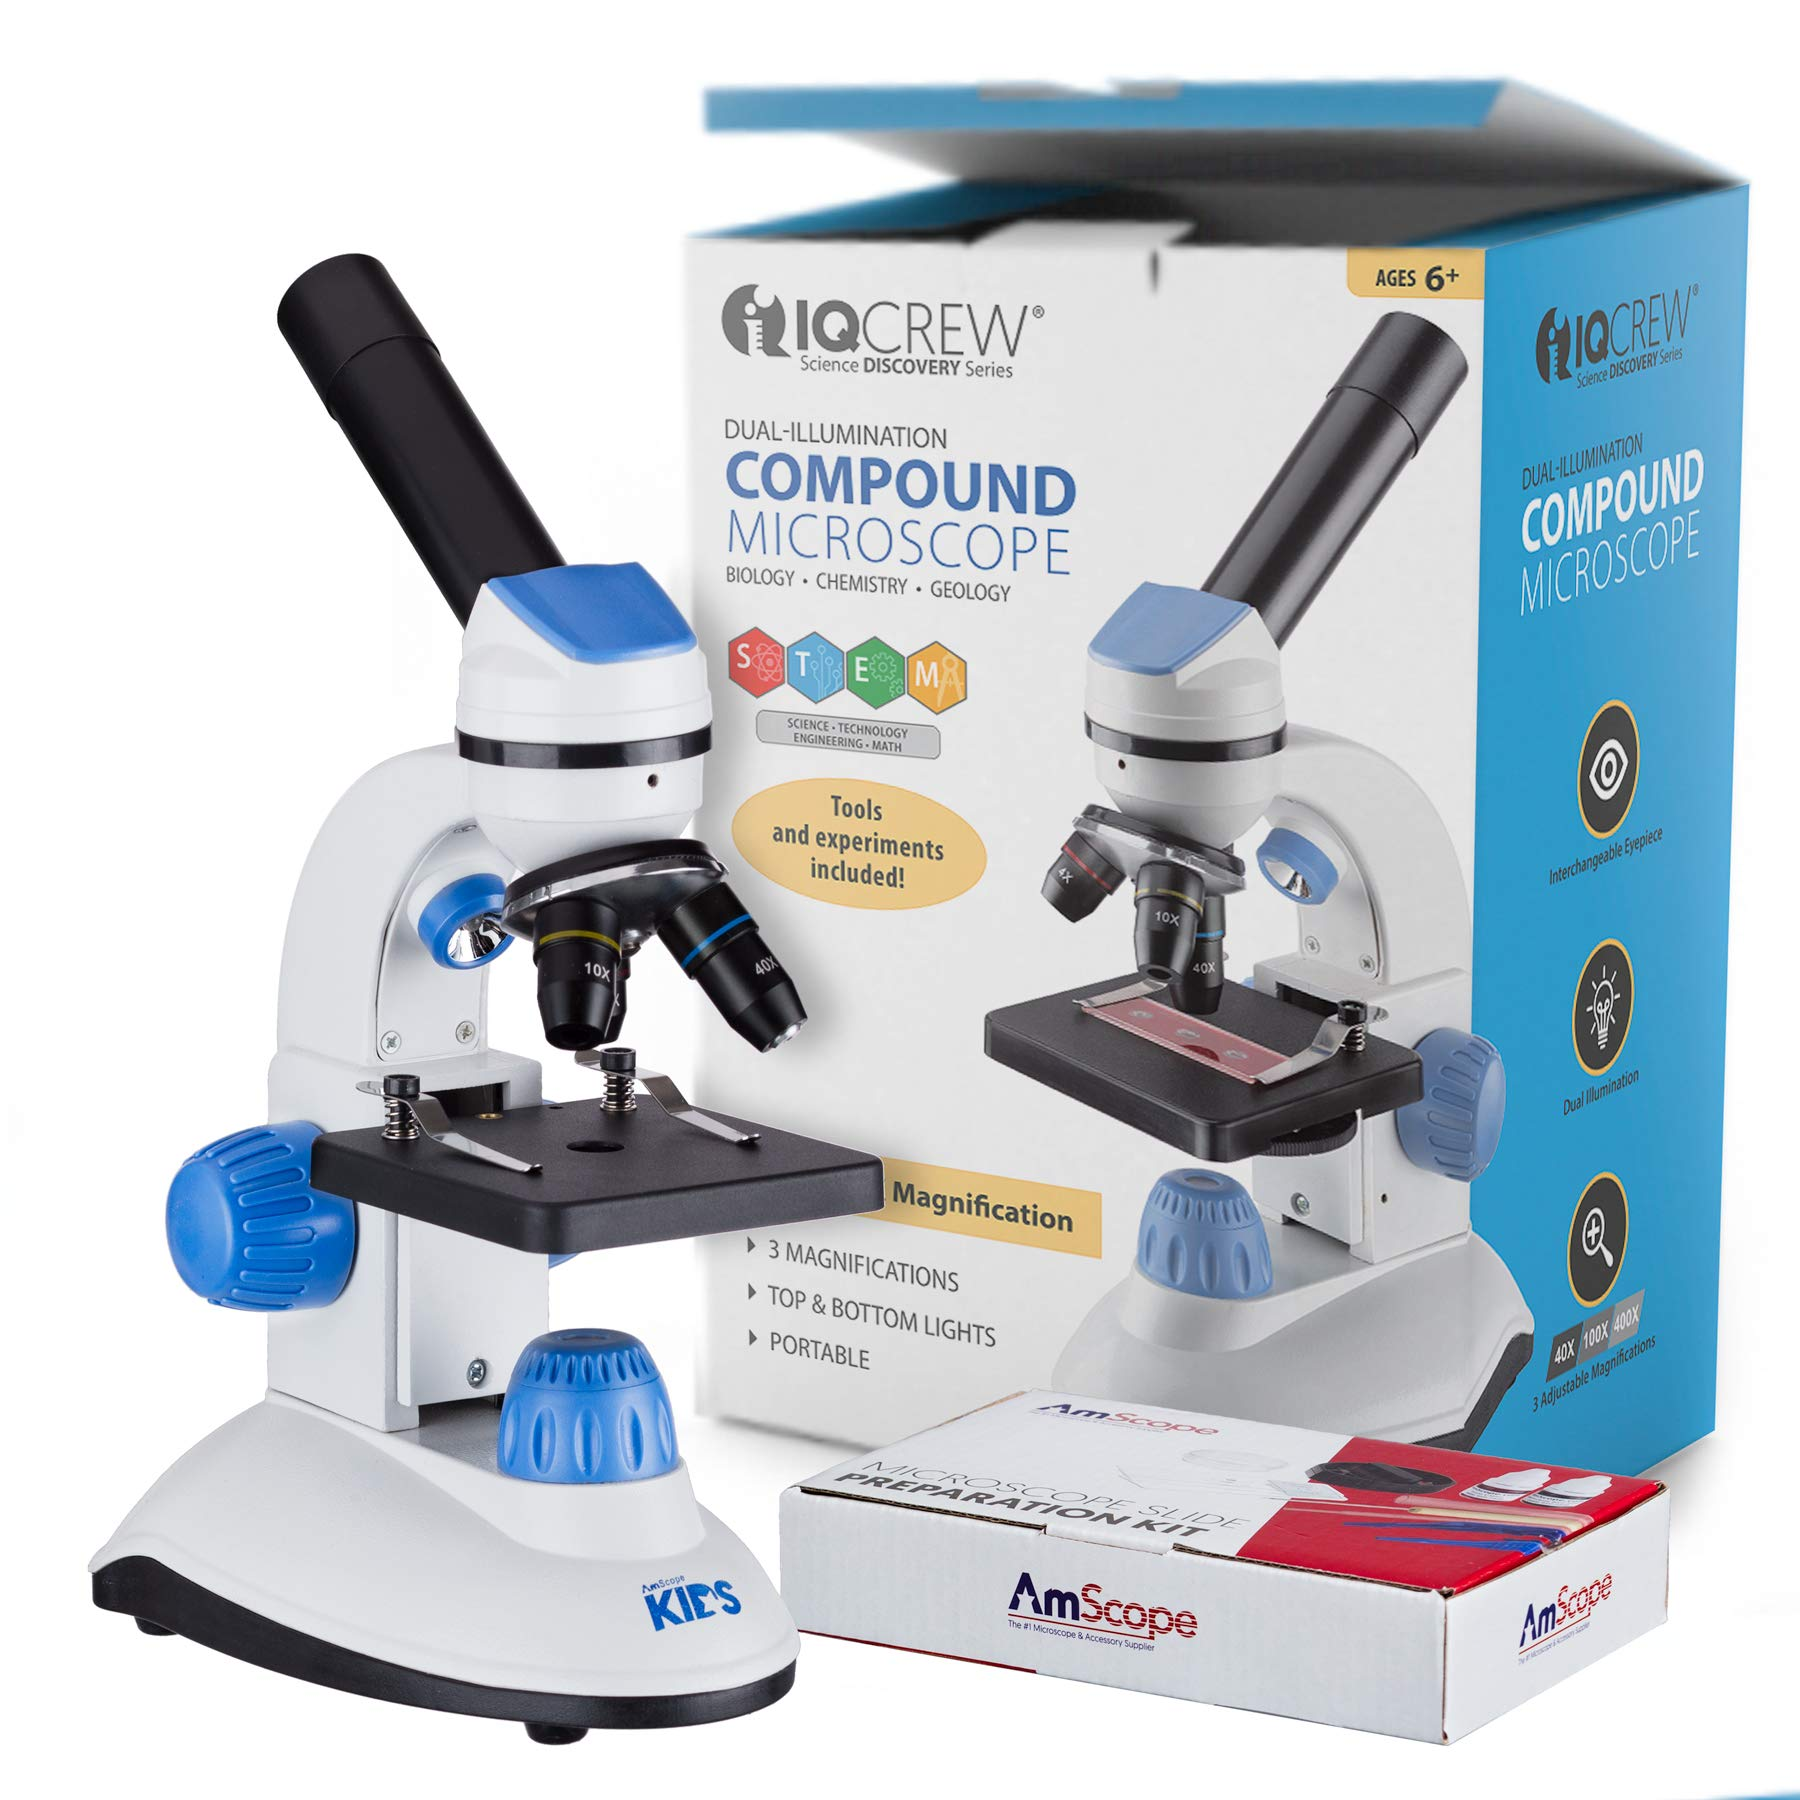 AMSCOPE-Kids M50C-B14 40X-1000X Dual Illumination Student Microscope Gift Package Awarded 2016 Top 3 Ranking Best Kids Microscope (Blue) by AmScope